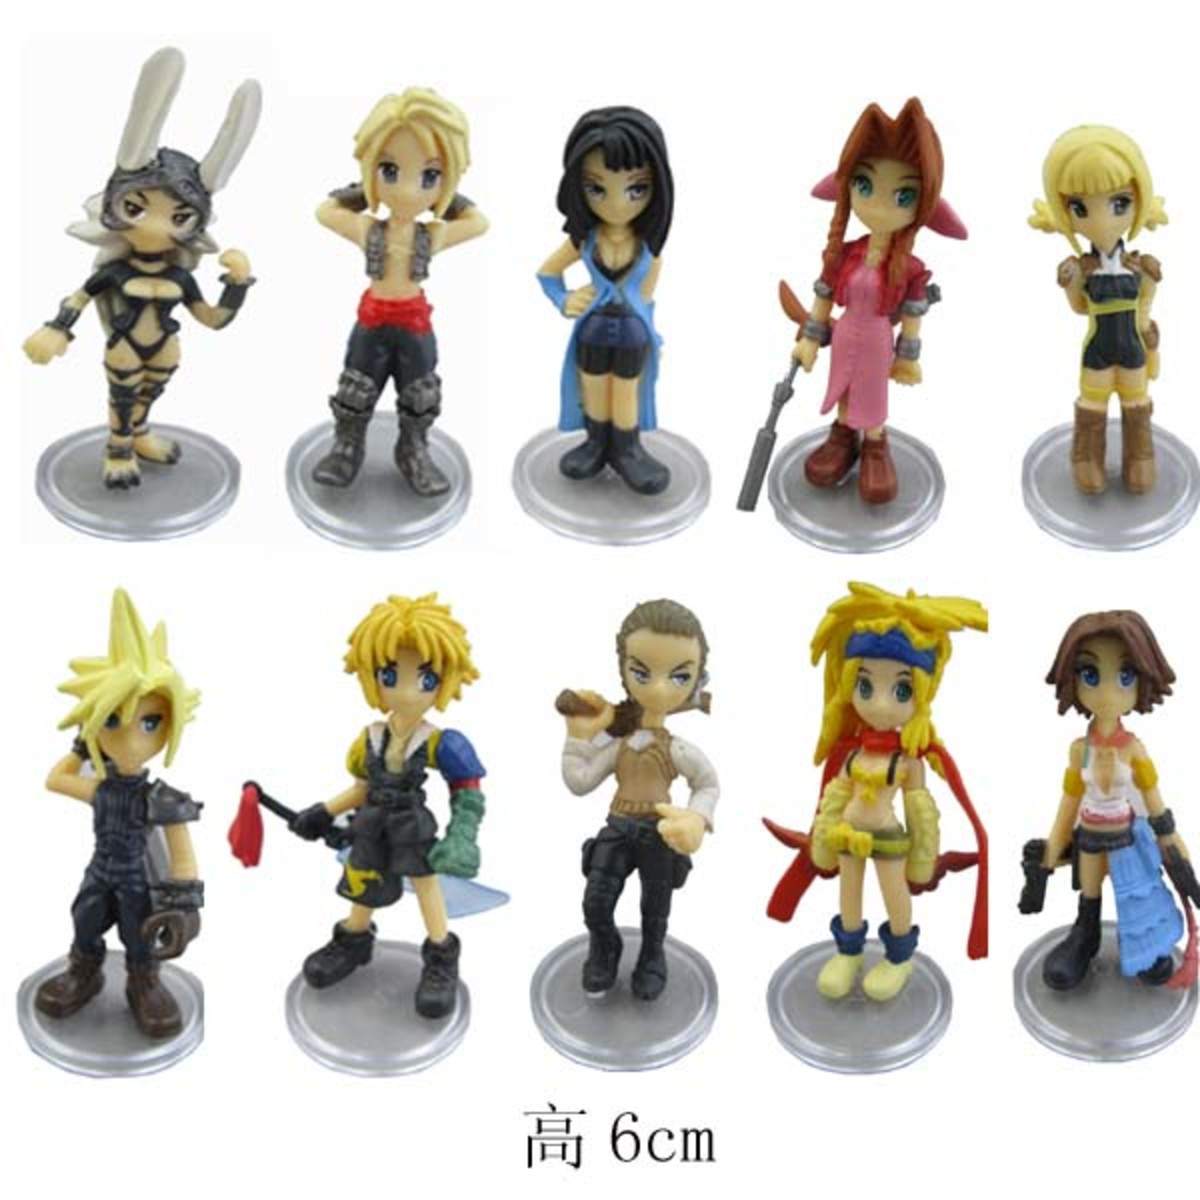 This photo shows up a lot on eBay listings and occasionally on Amazon. DO NOT BUY. The paint jobs are missing all kinds of details (Easiest to spot: Tidus' shoes should be yellow and black, not just black.)